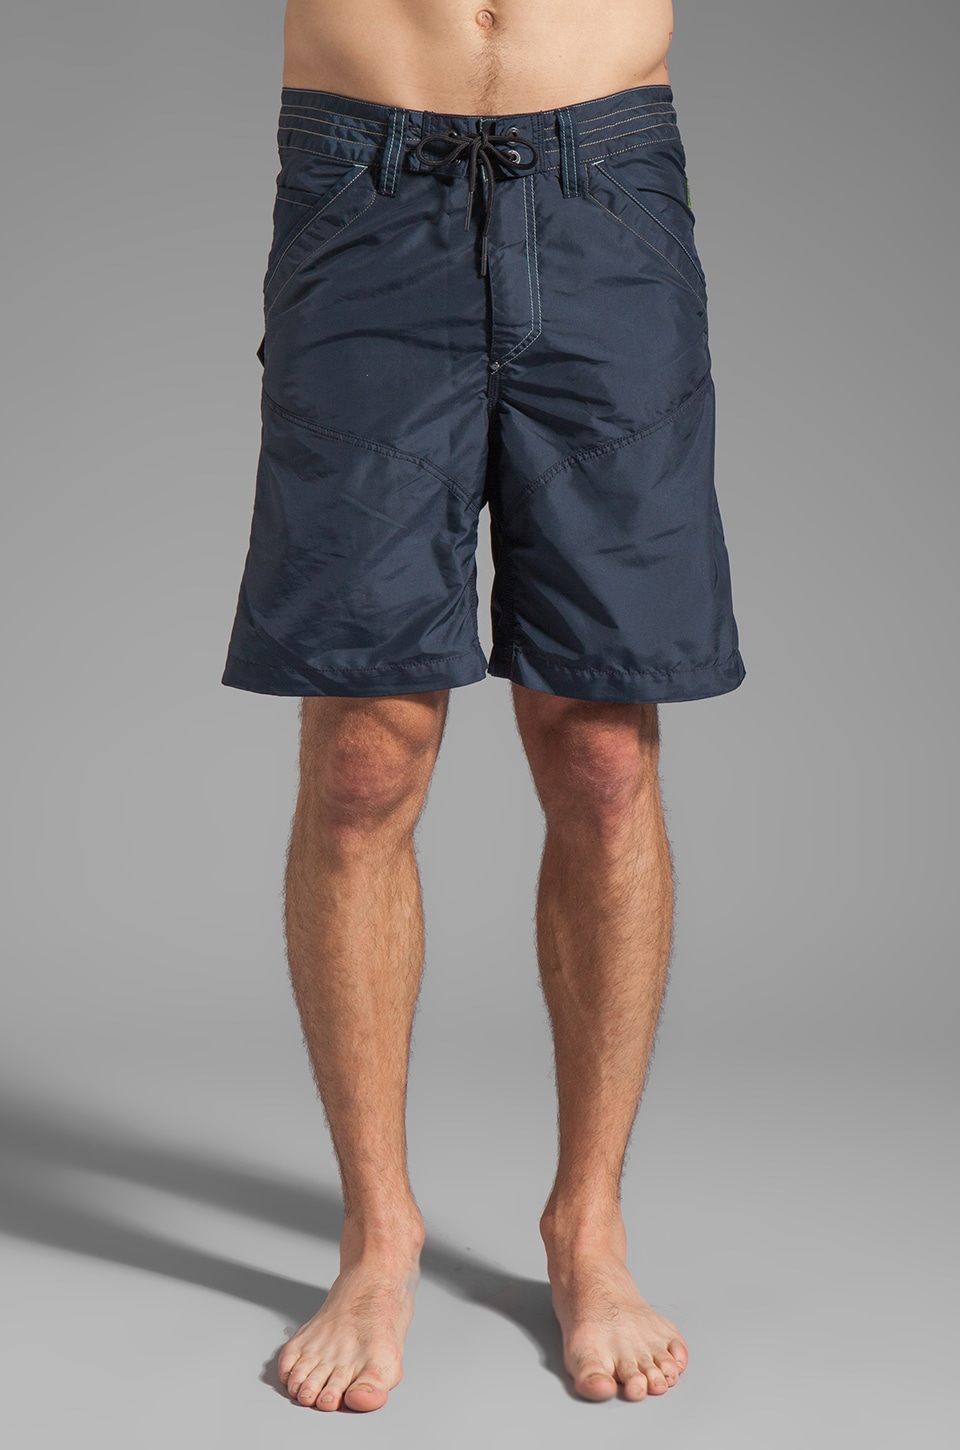 G-Star Recruit 5620 Board Short in Navy